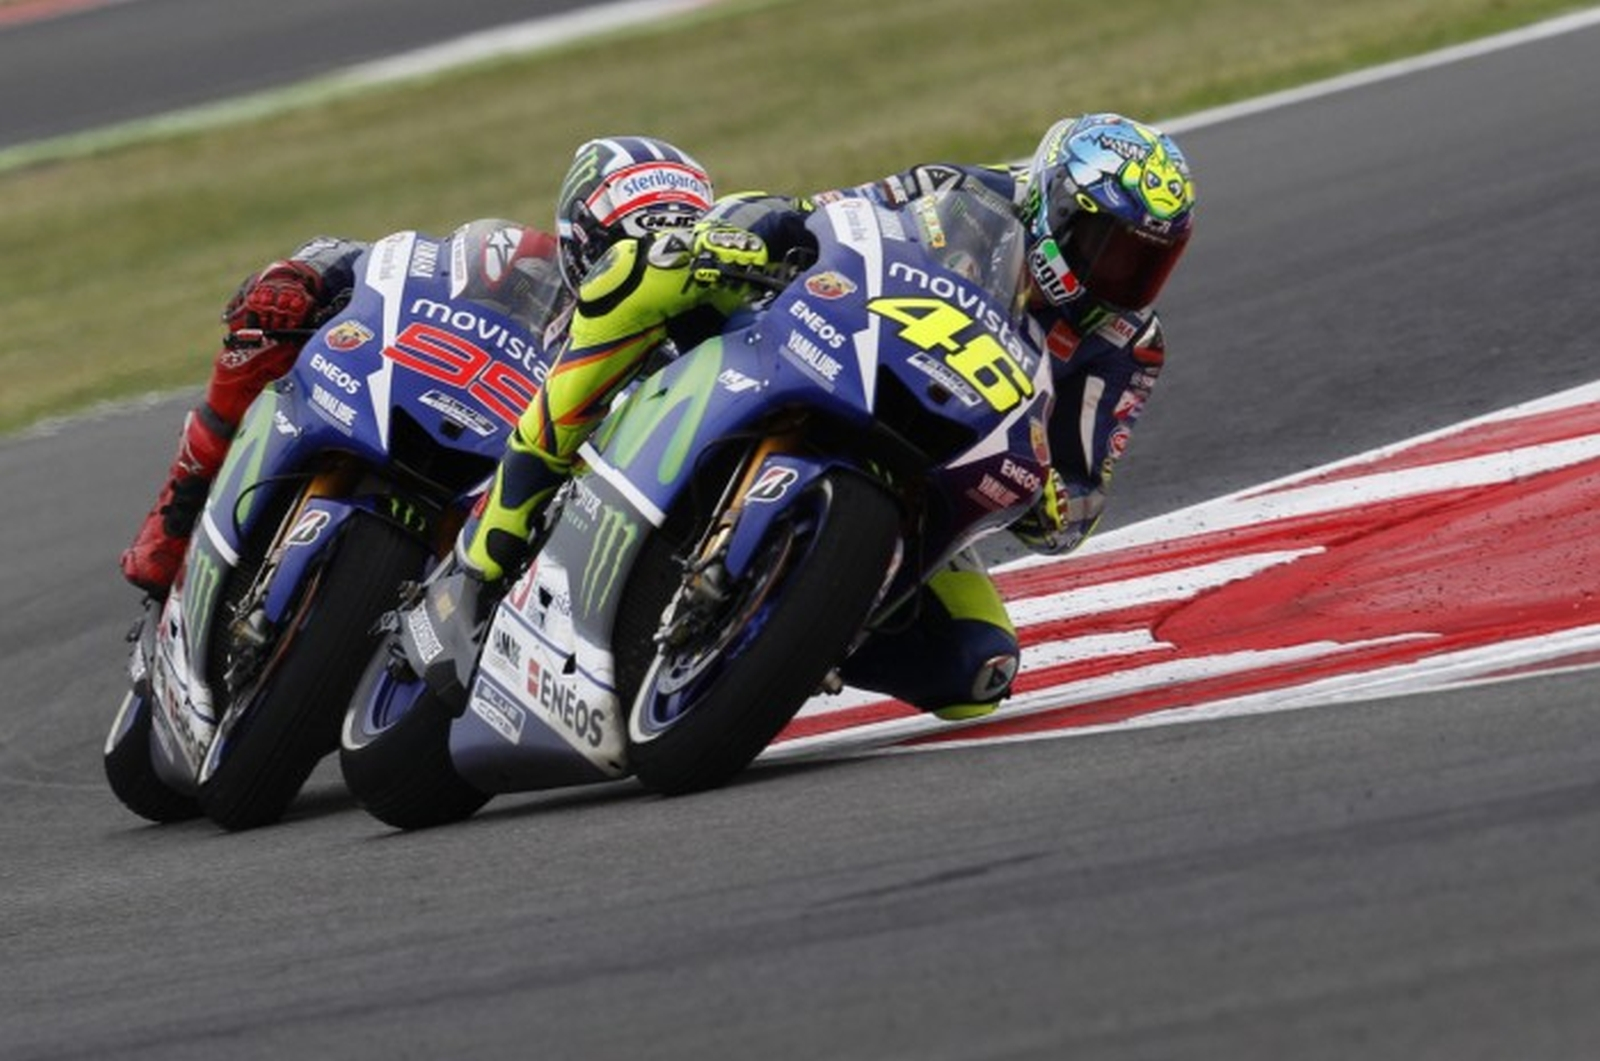 2015 motogp here 39 s how rossi can win the championship motoroids. Black Bedroom Furniture Sets. Home Design Ideas